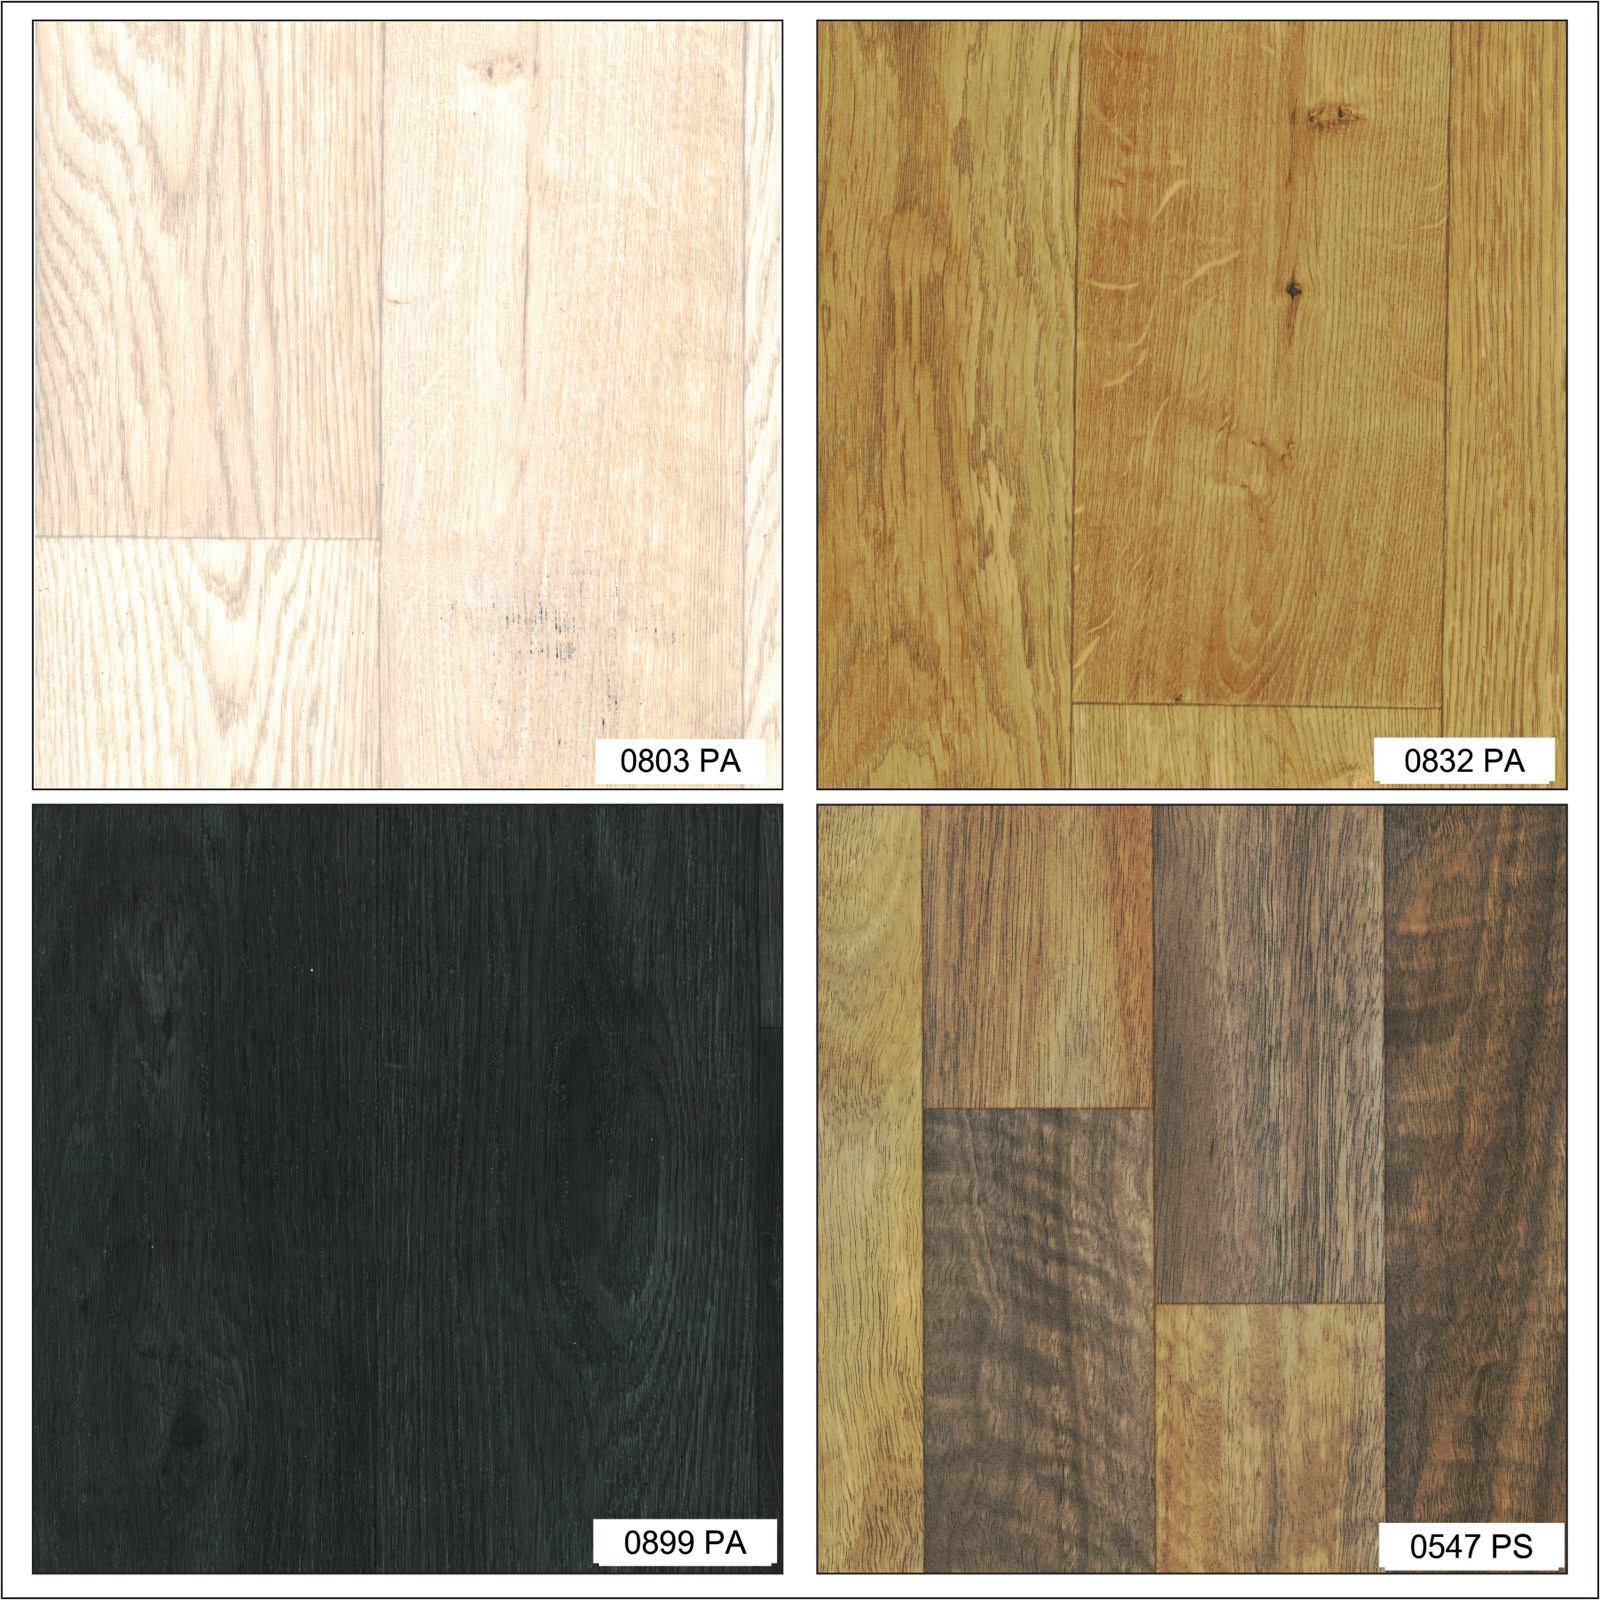 Thick wood effect high quality anti slip lino home kitchen for Wood effect vinyl flooring bathroom